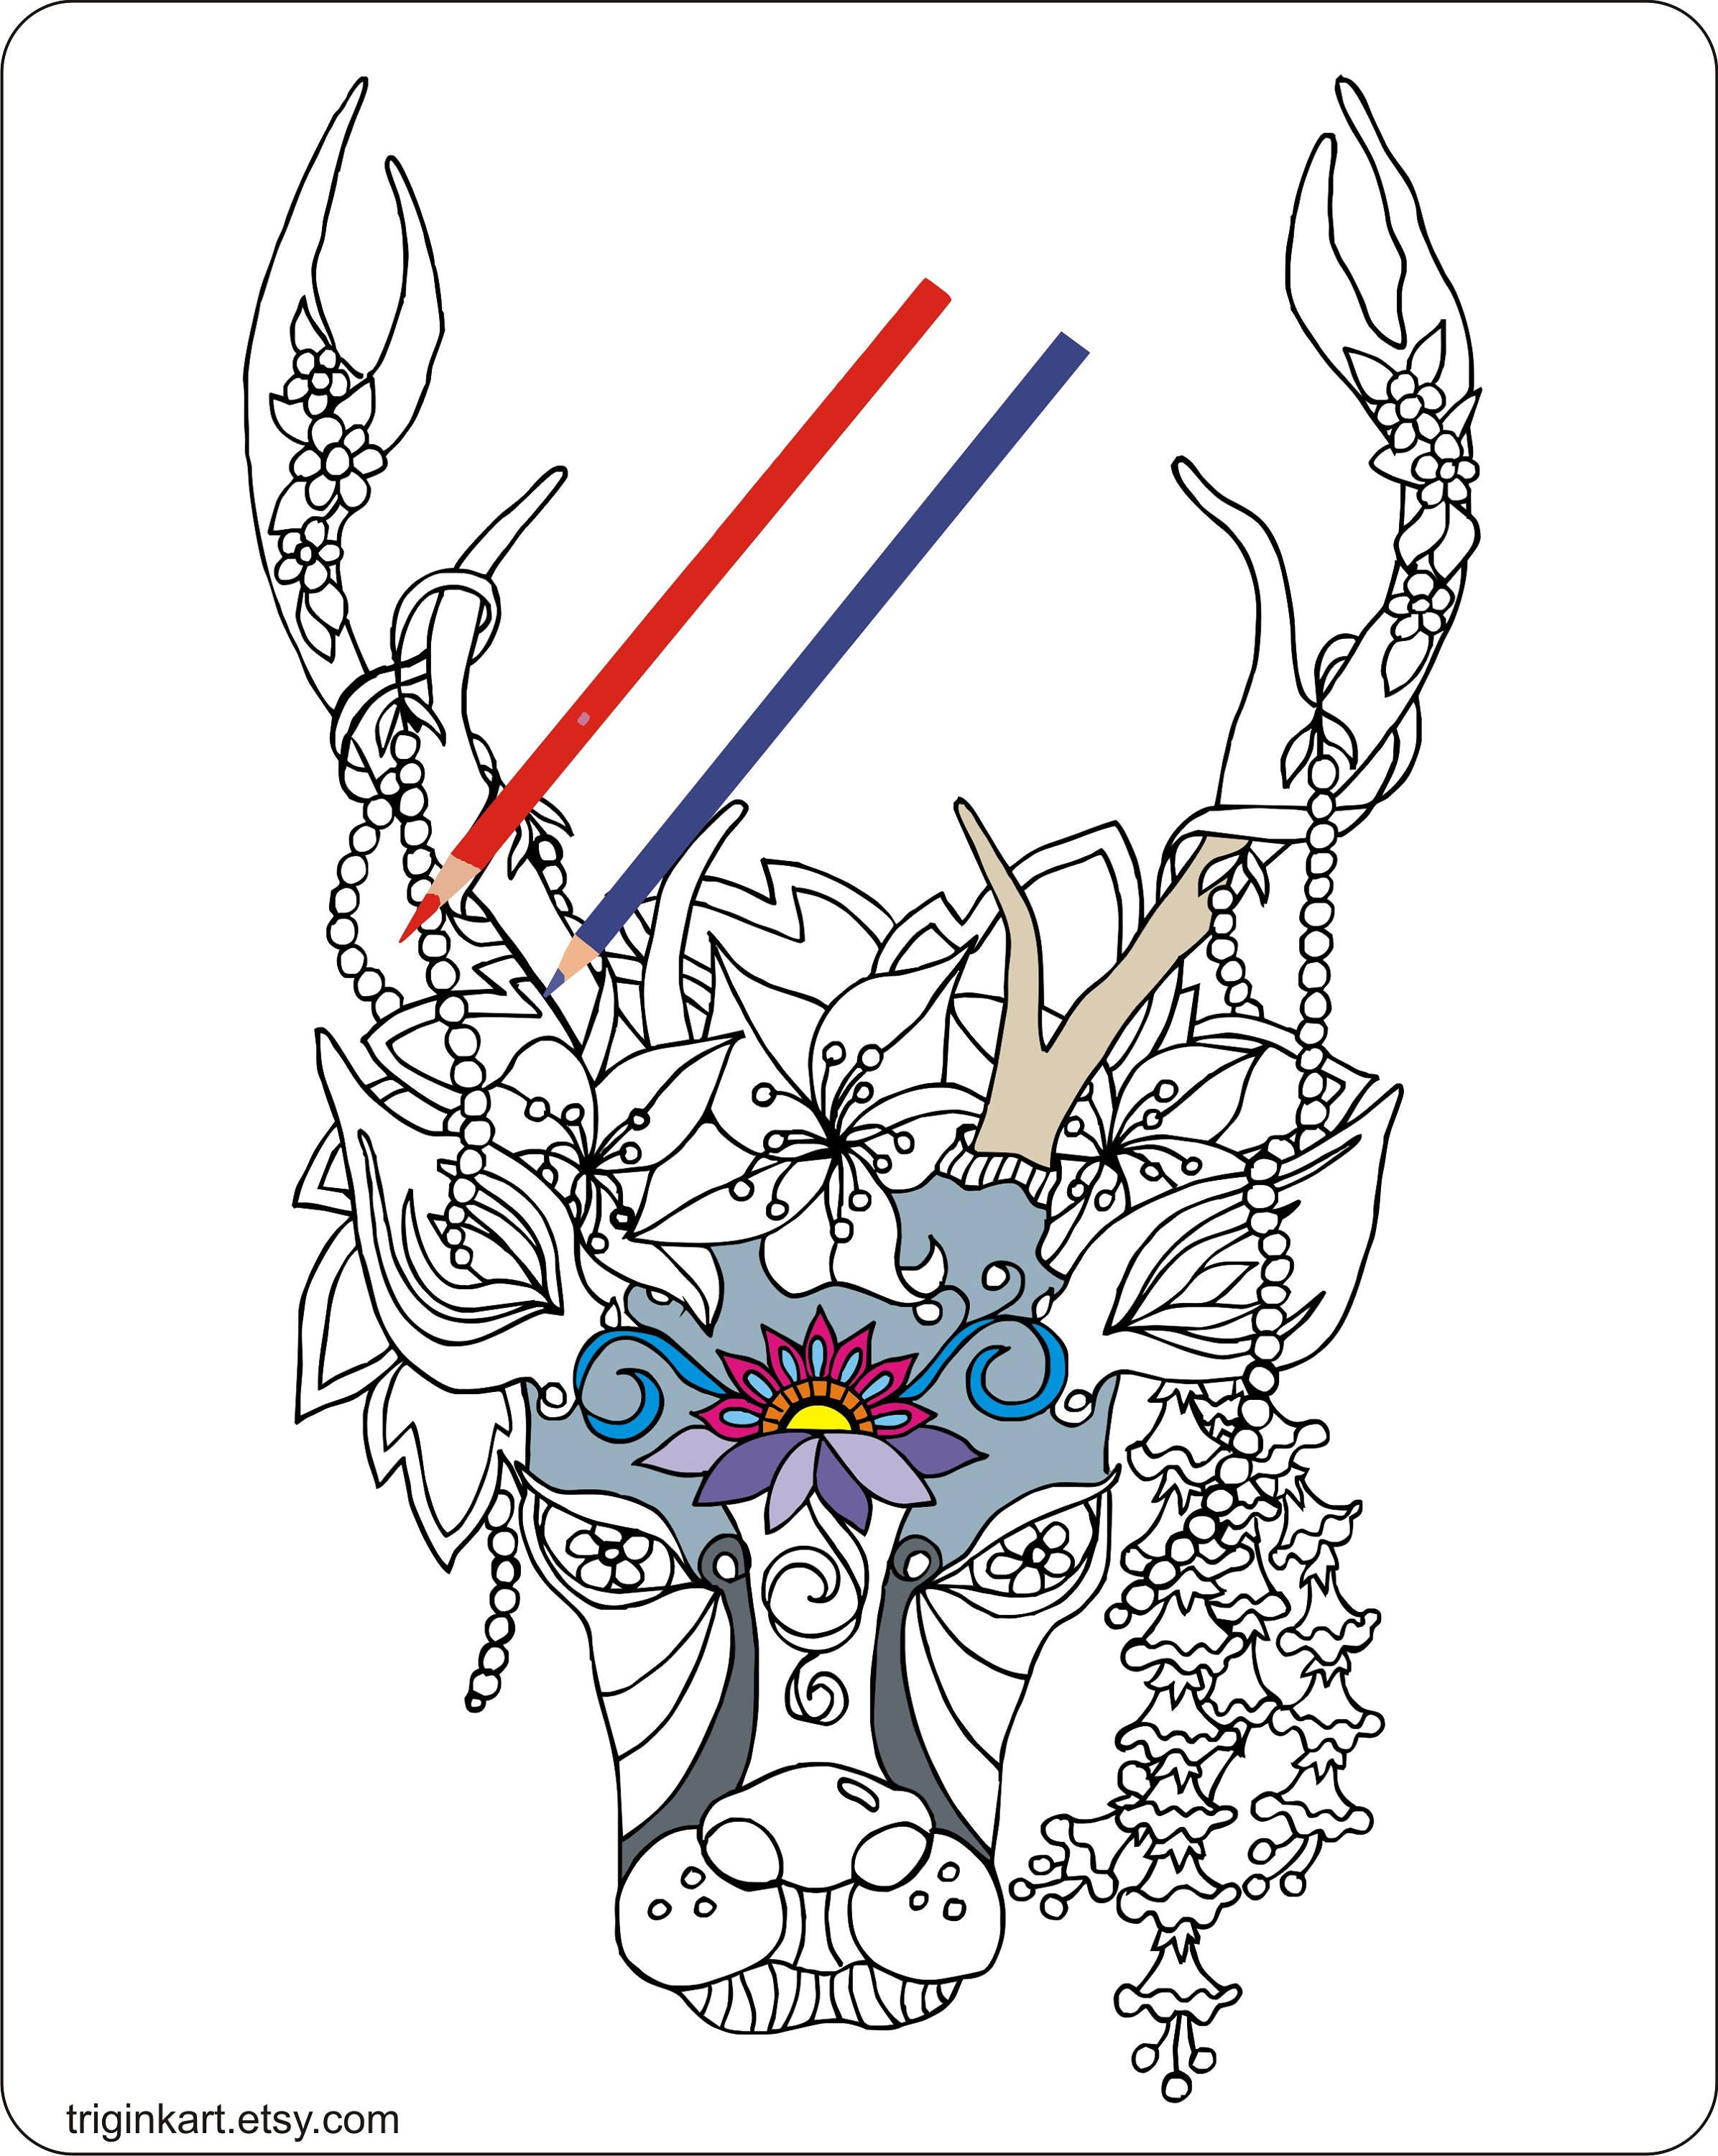 Deer Buck Lillys Adult coloring page | Etsy